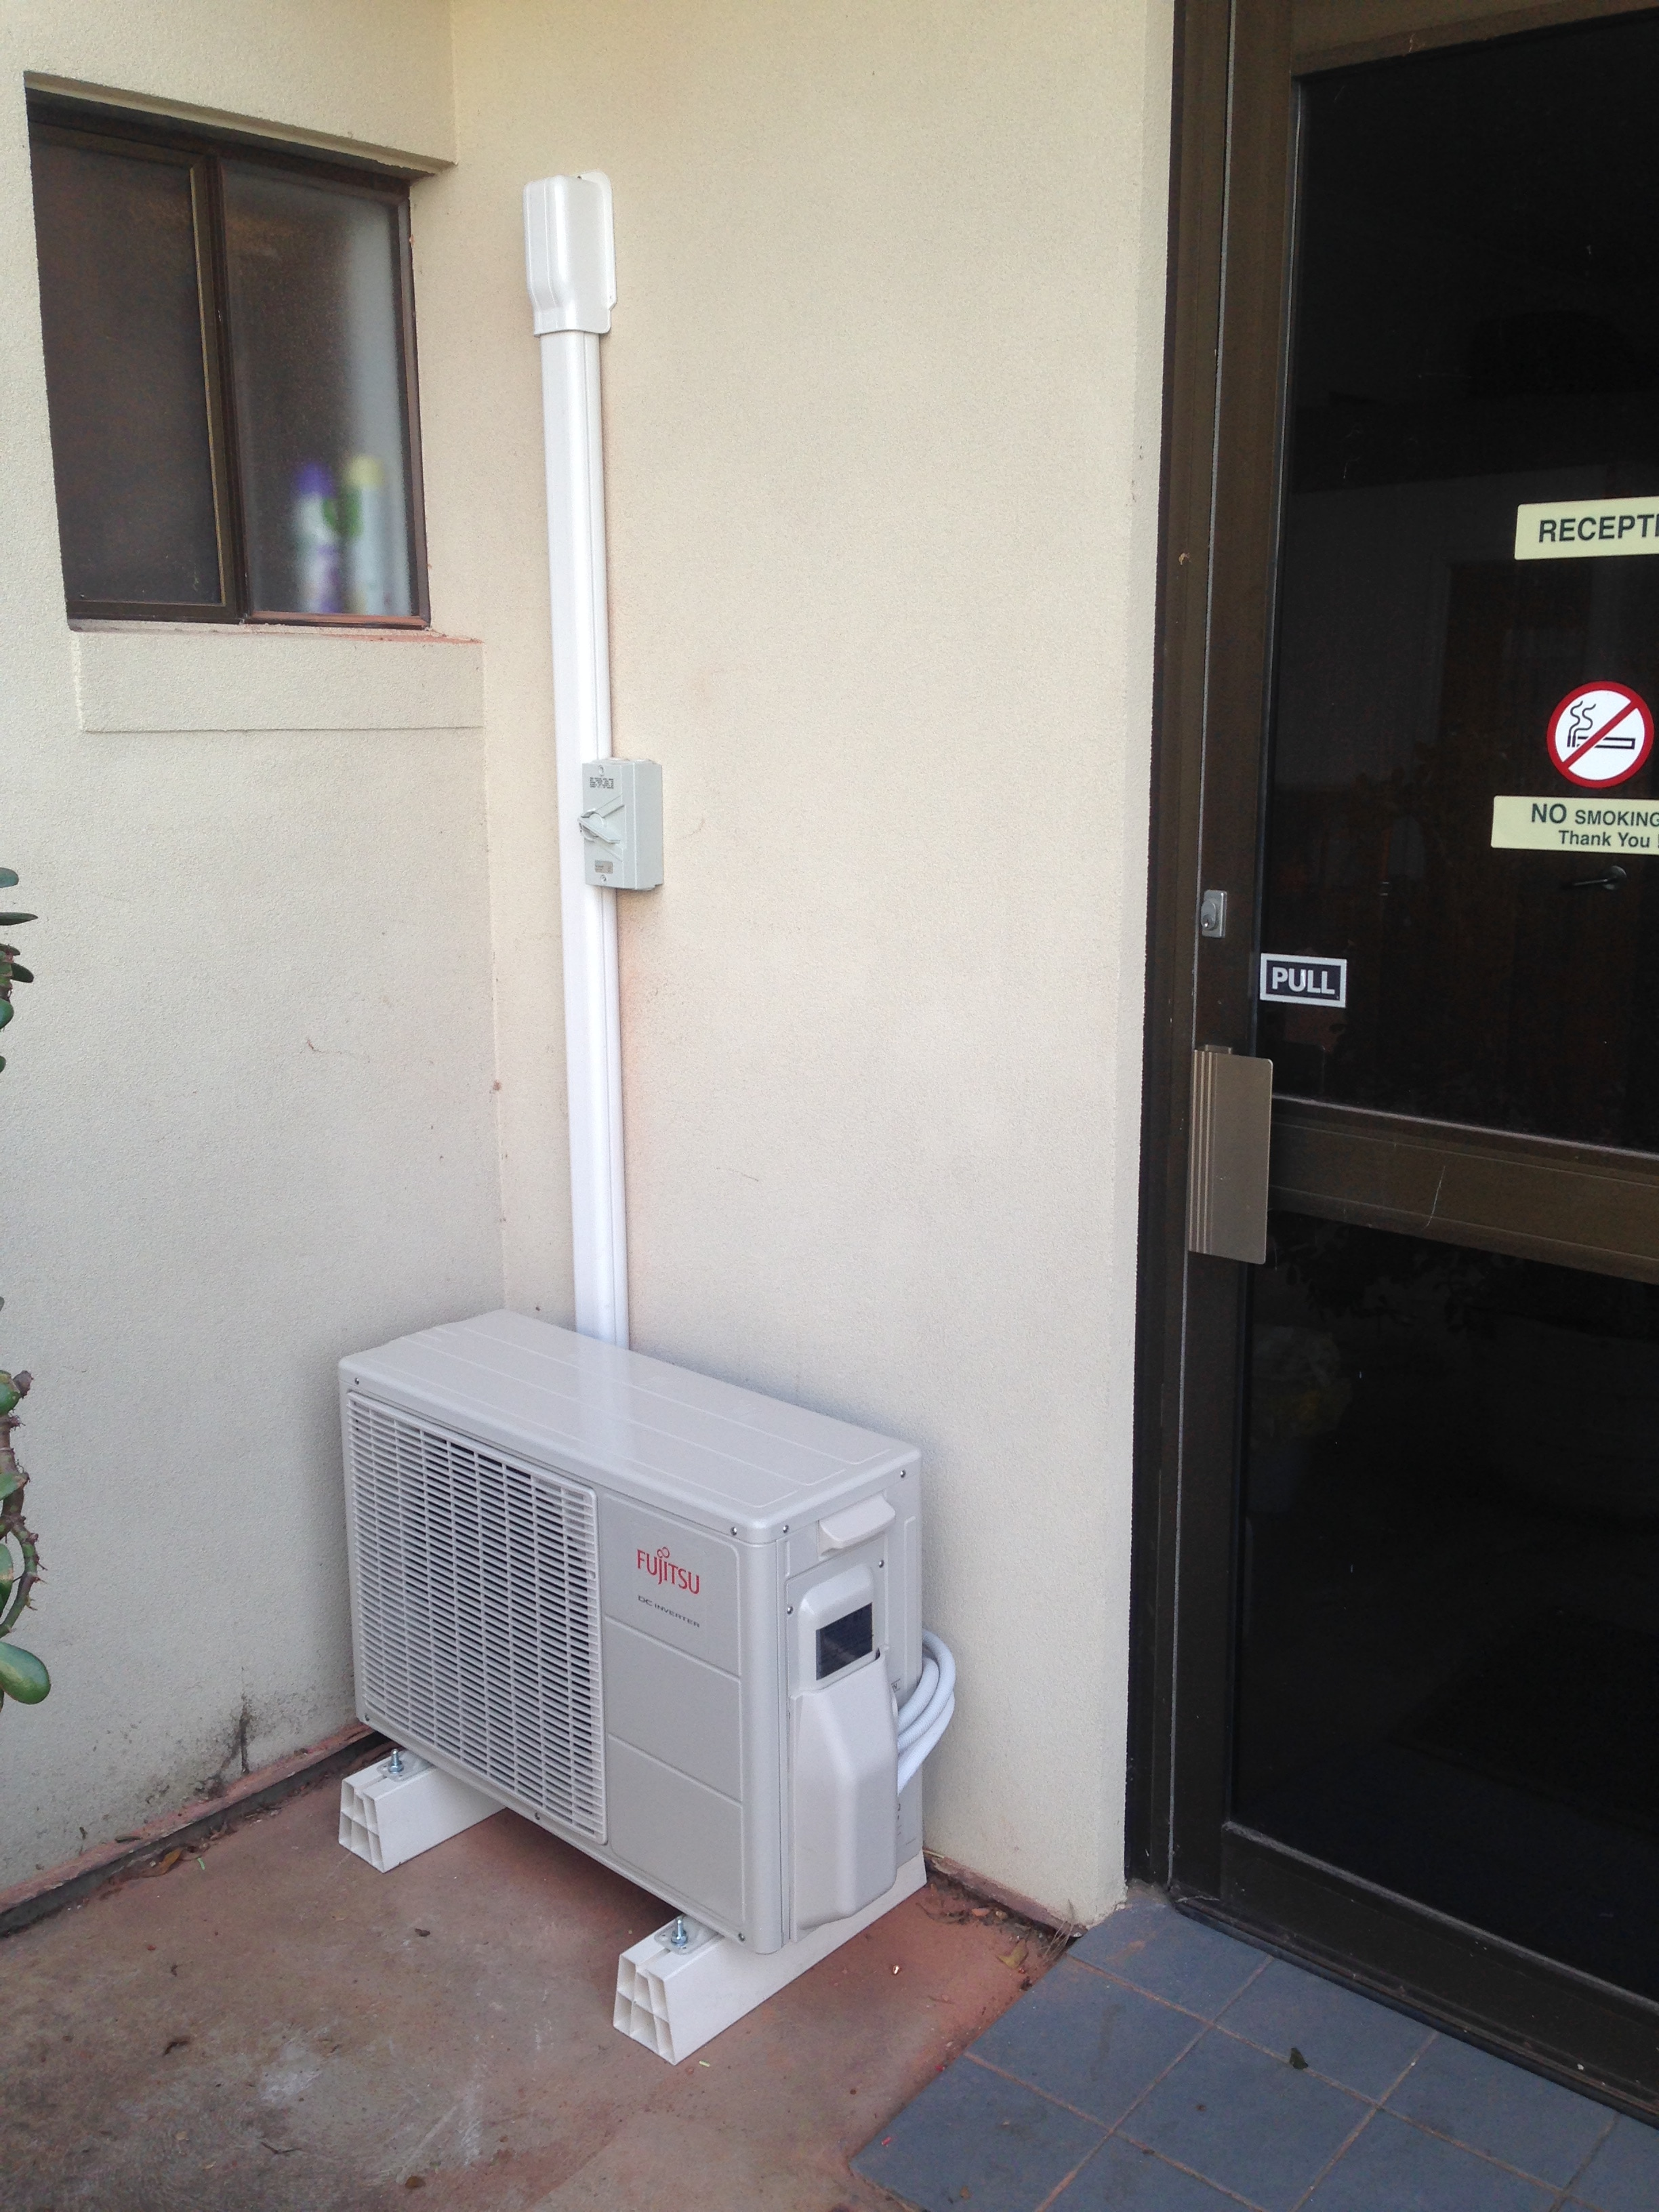 #7E6E4D Quick Fix Electrical & Air Conditioning Air Conditioning  Most Effective 9735 Split System Air Conditioner Installers Adelaide pictures with 2448x3264 px on helpvideos.info - Air Conditioners, Air Coolers and more